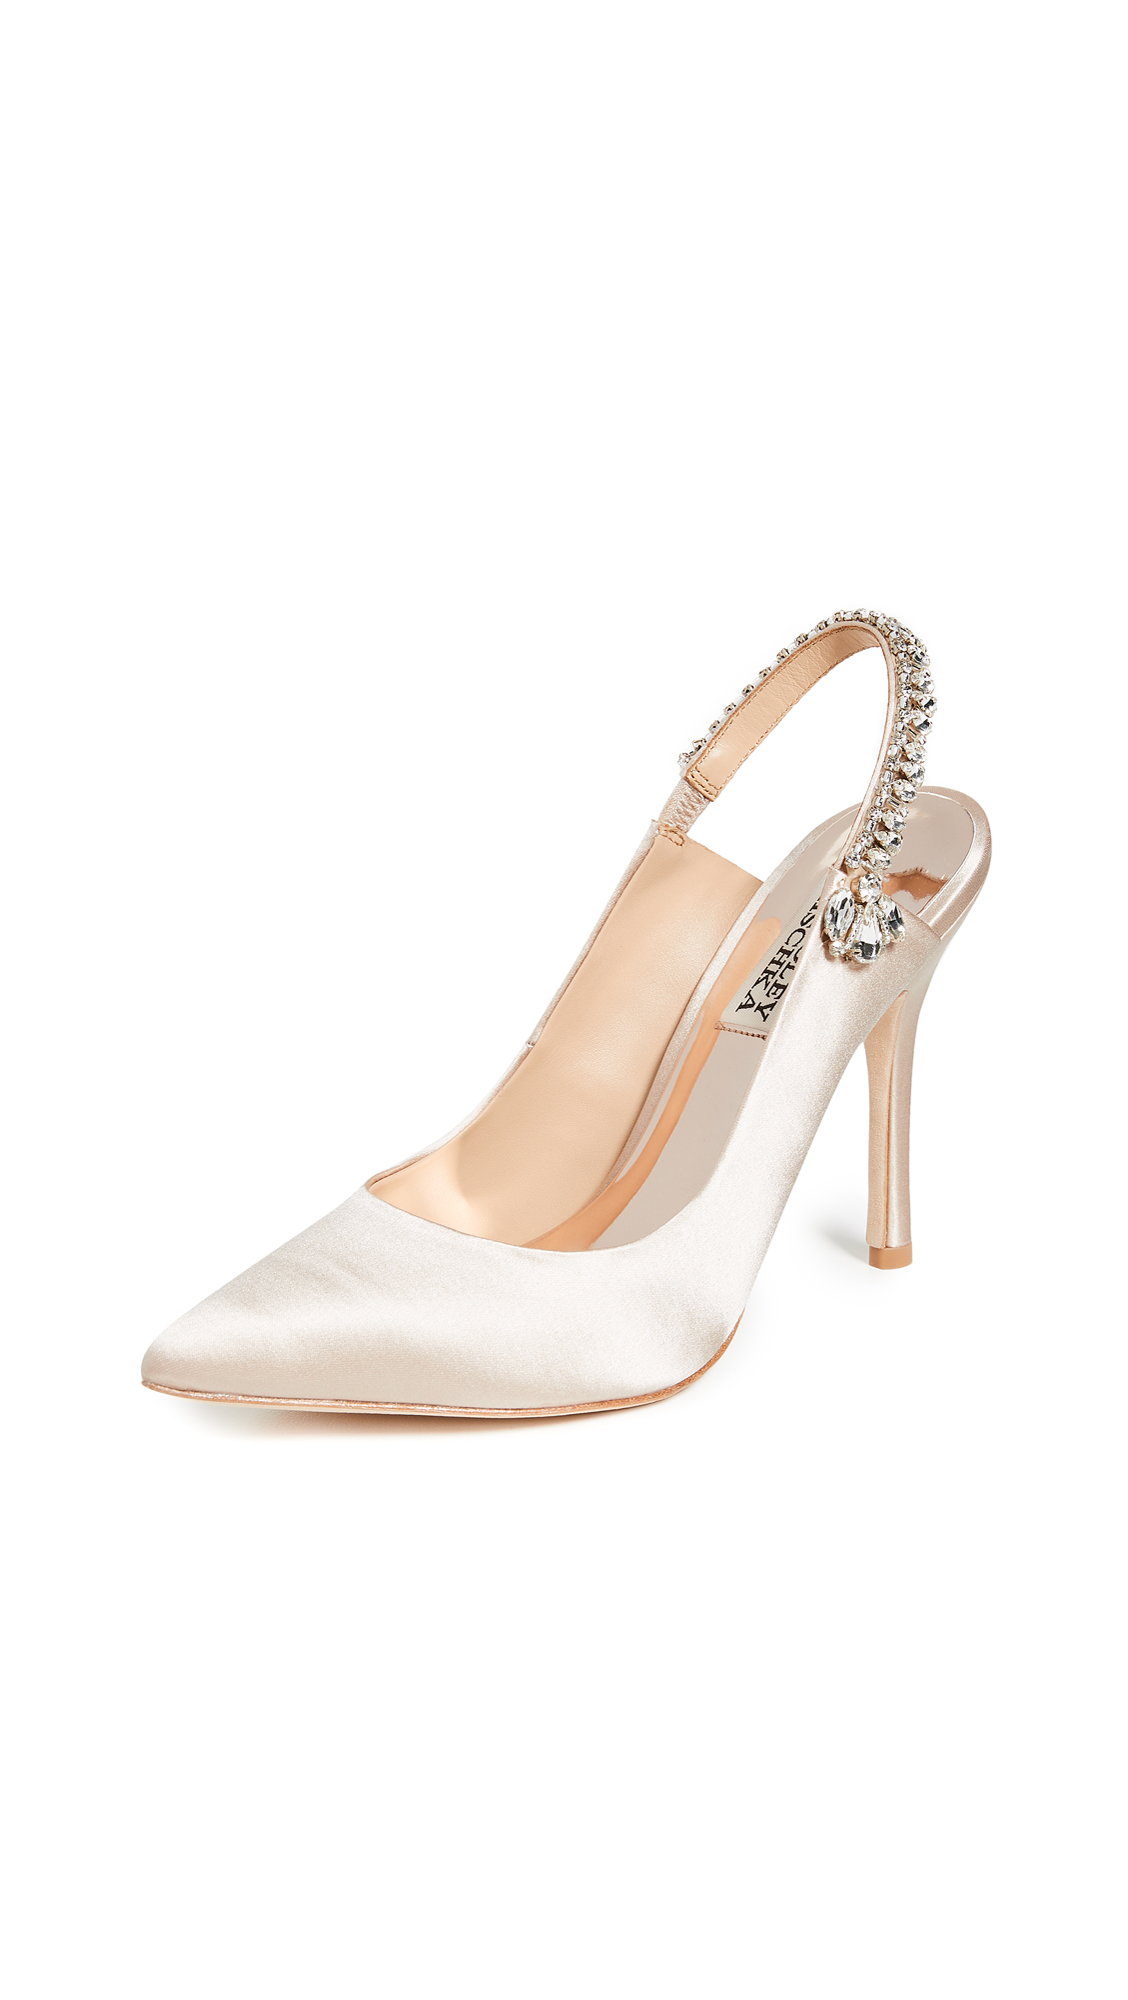 Badgley Mischka Paxton Slingback Pumps with Pointed Toe - Latte